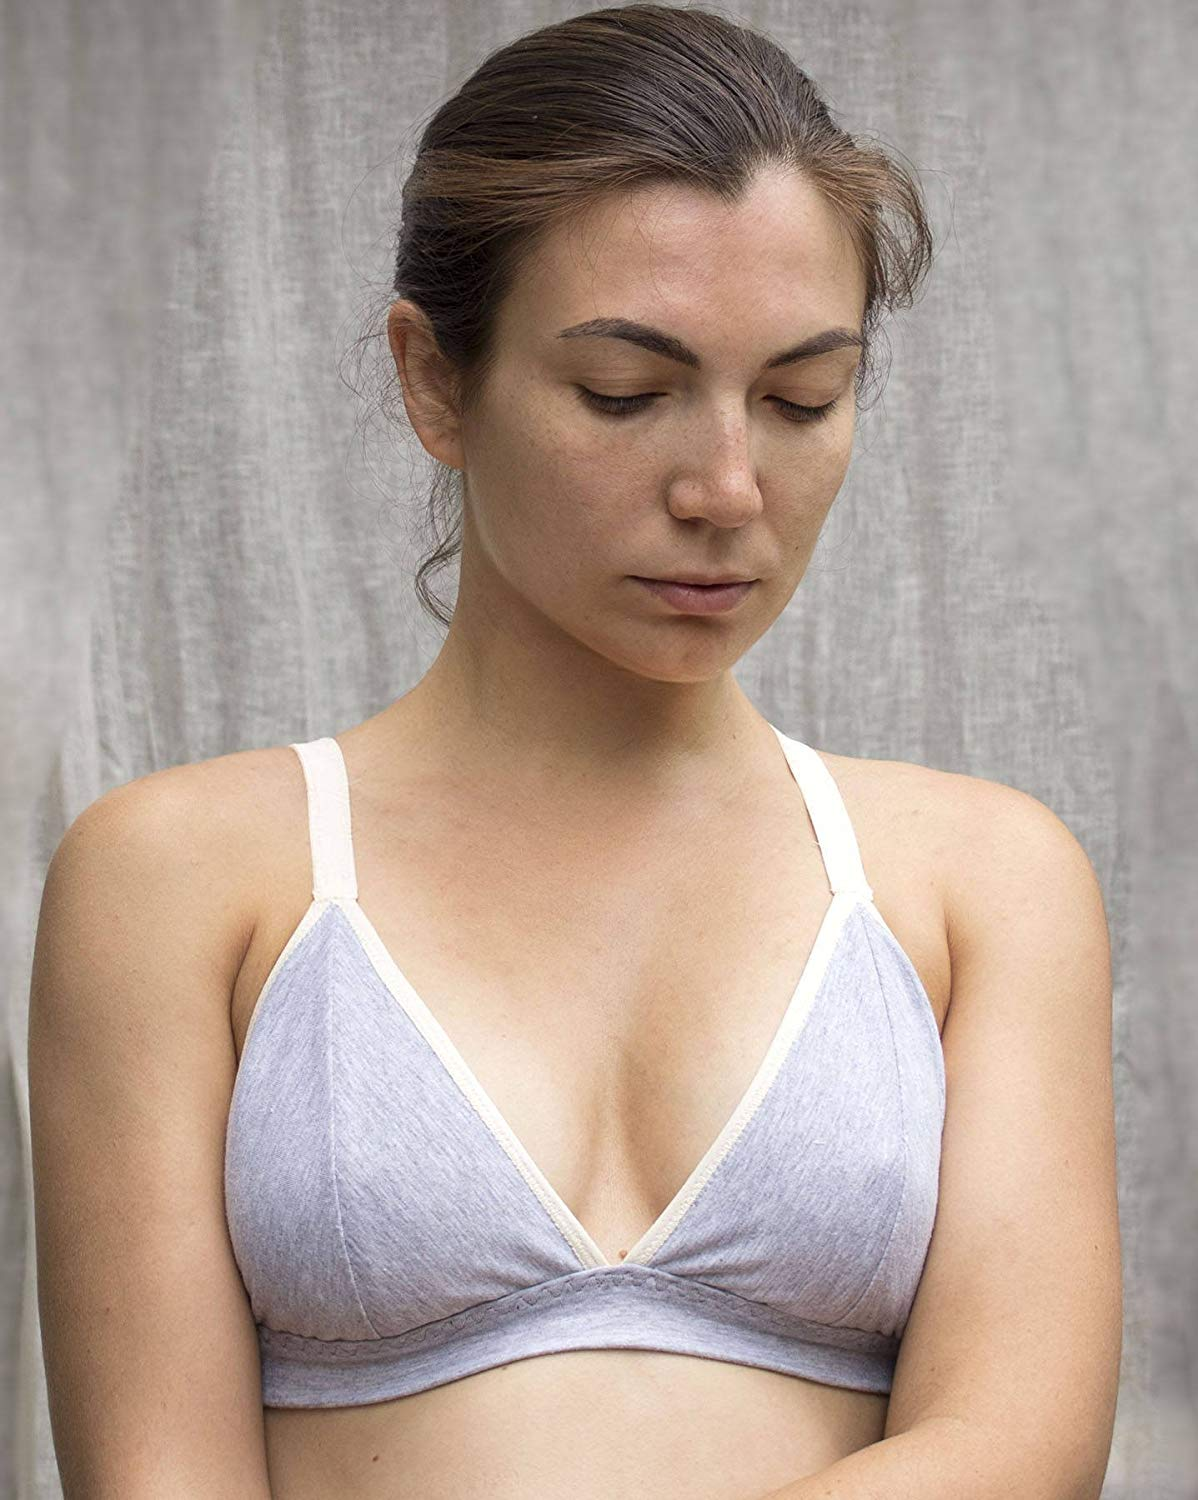 1dce6706c302f7 Get Quotations · Organic Cotton Gray Bralette. Soft Wireless Bra.  Comfortable Supportive Bralette. Convertible Straps.